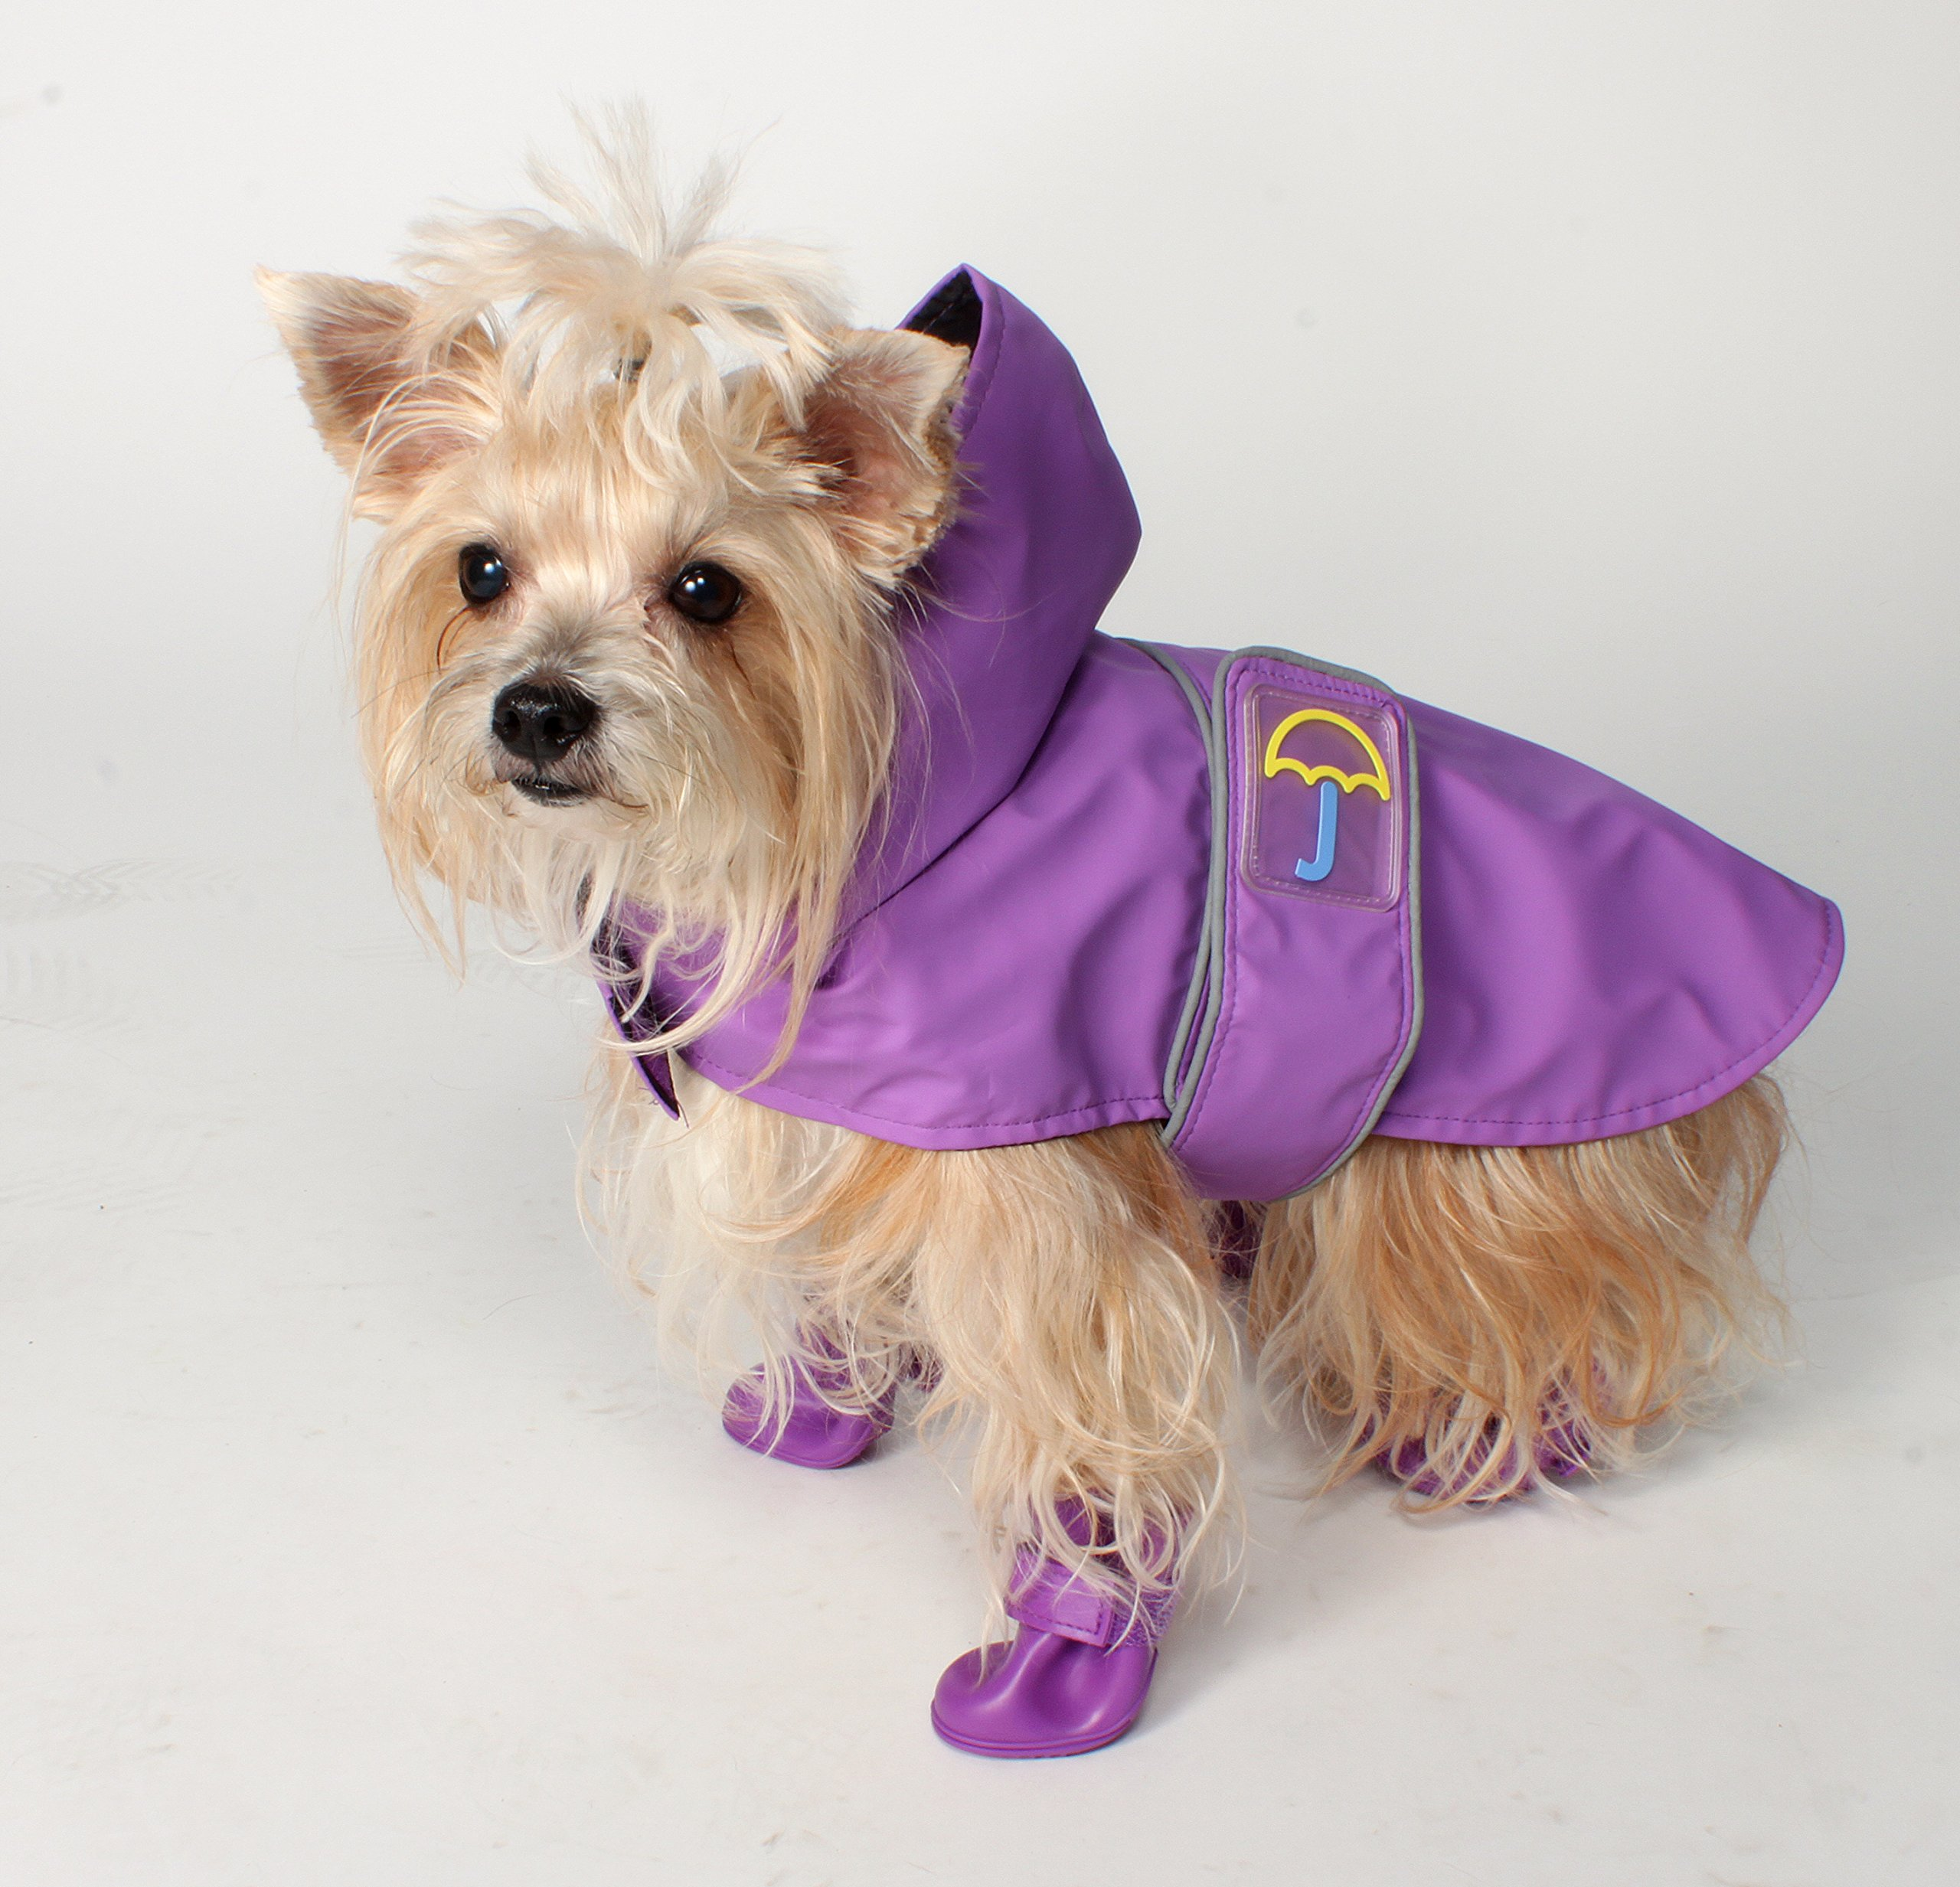 Jelly Wellies Premium Quality Waterproof Reflective Classic Raincoat for Dogs- Medium, Purple by American Kennel Club (Image #3)